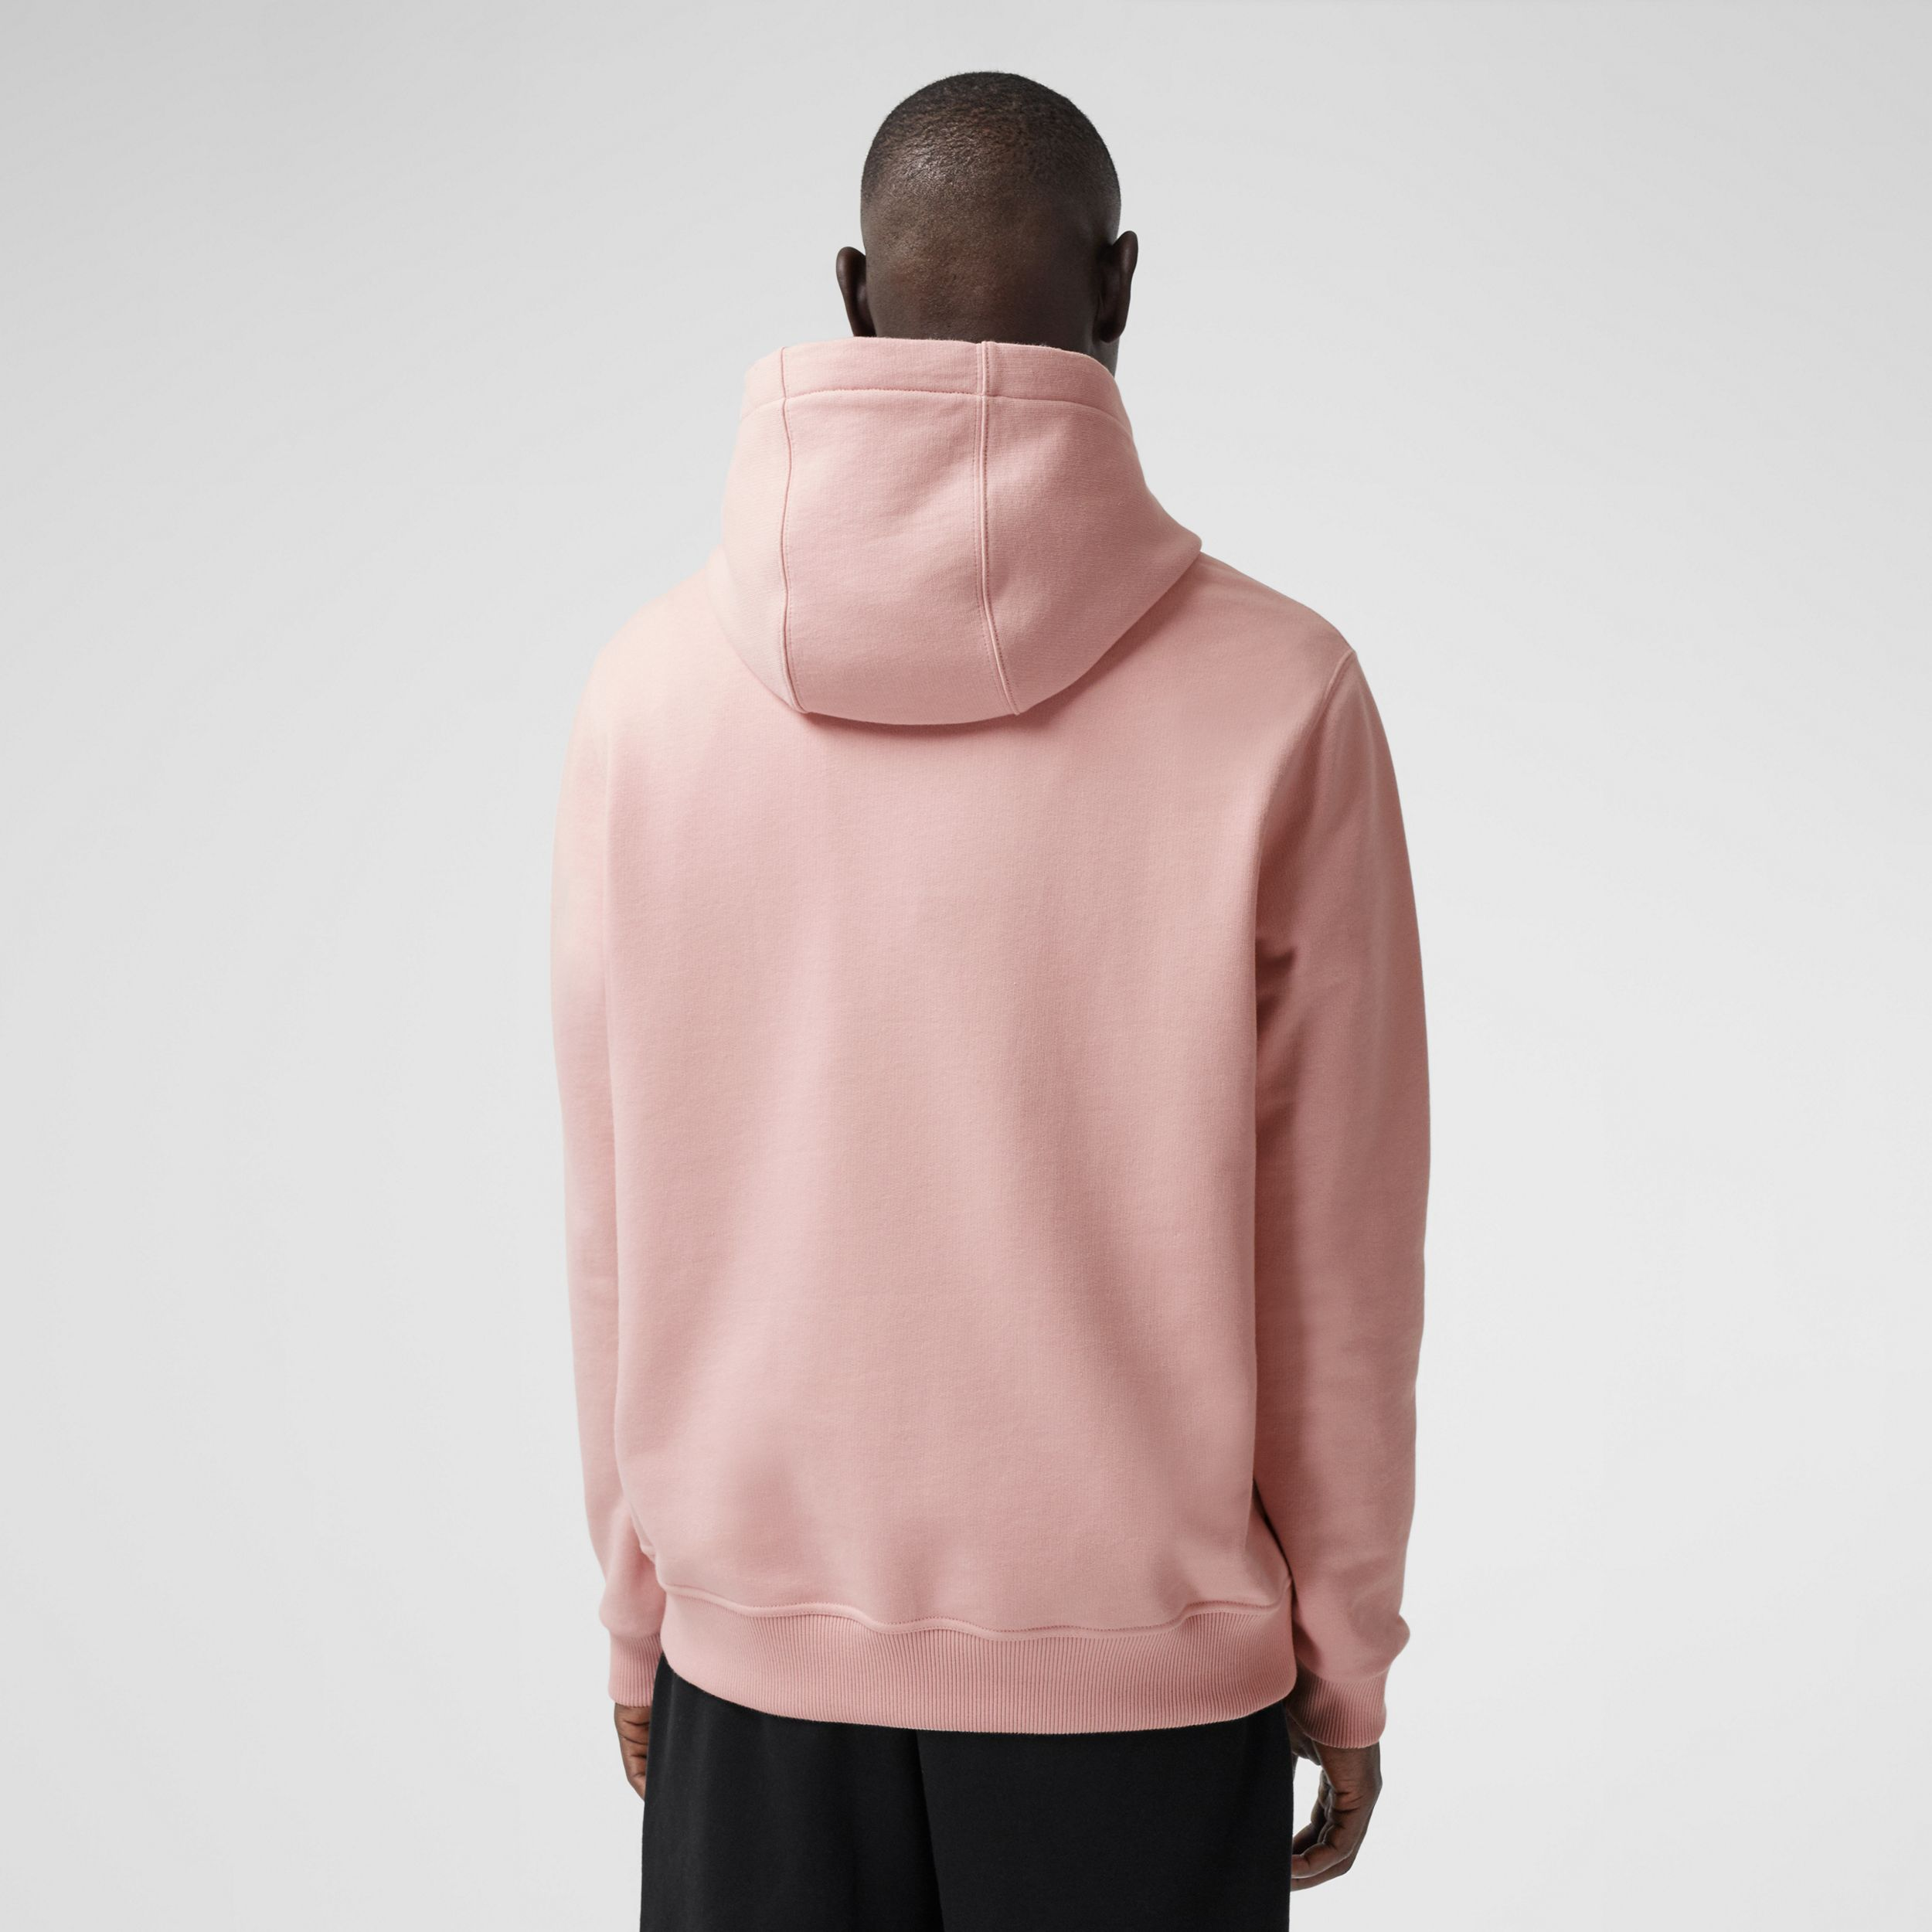 Kaleidoscope Print Cotton Hoodie in Frosted Pink - Men | Burberry - 3